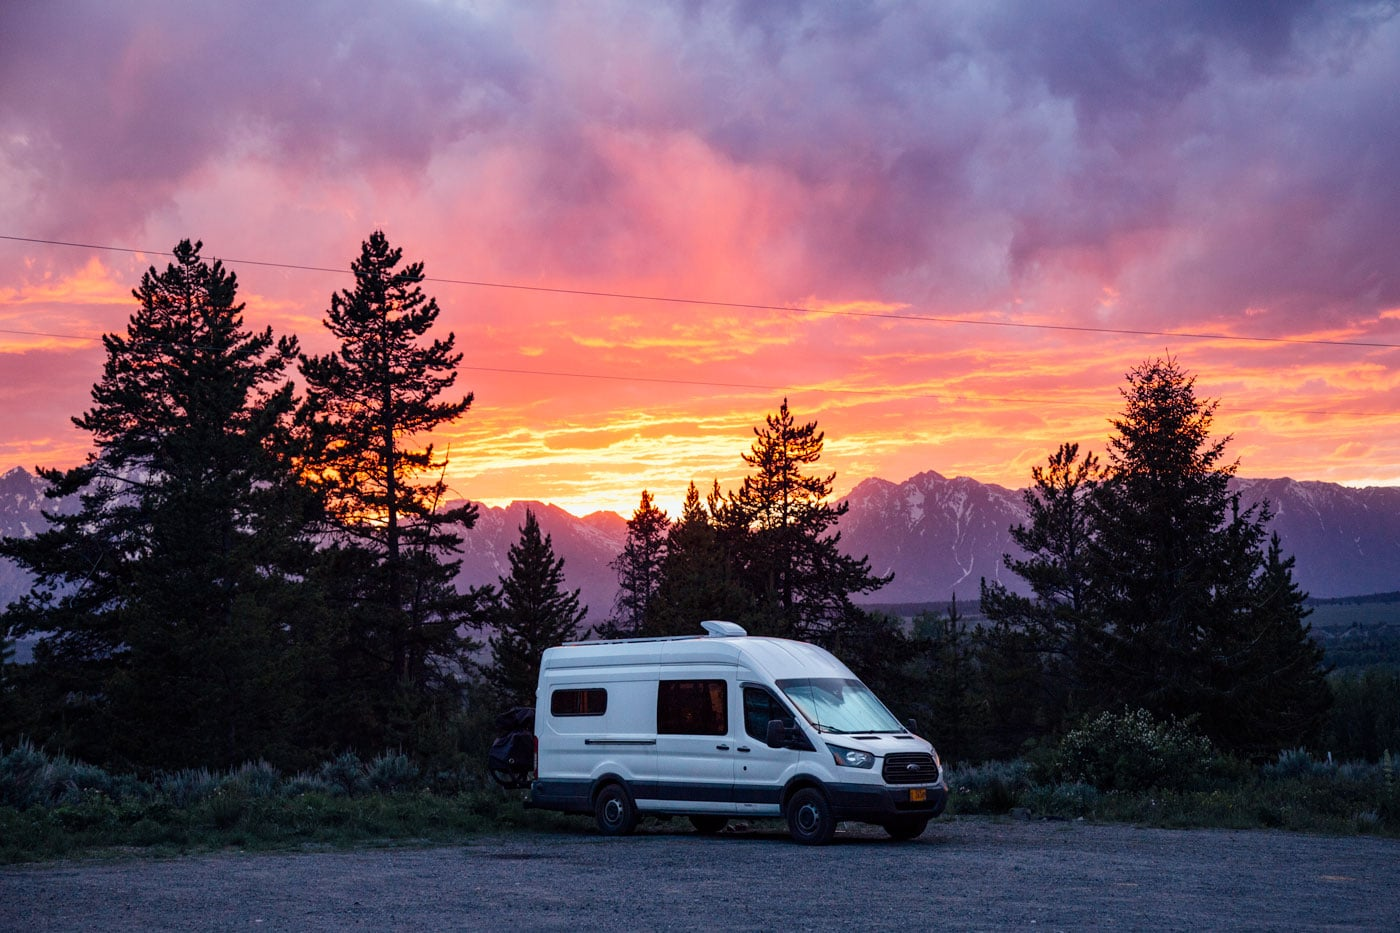 A campervan parked with a sunset and the Teton mountains in the background